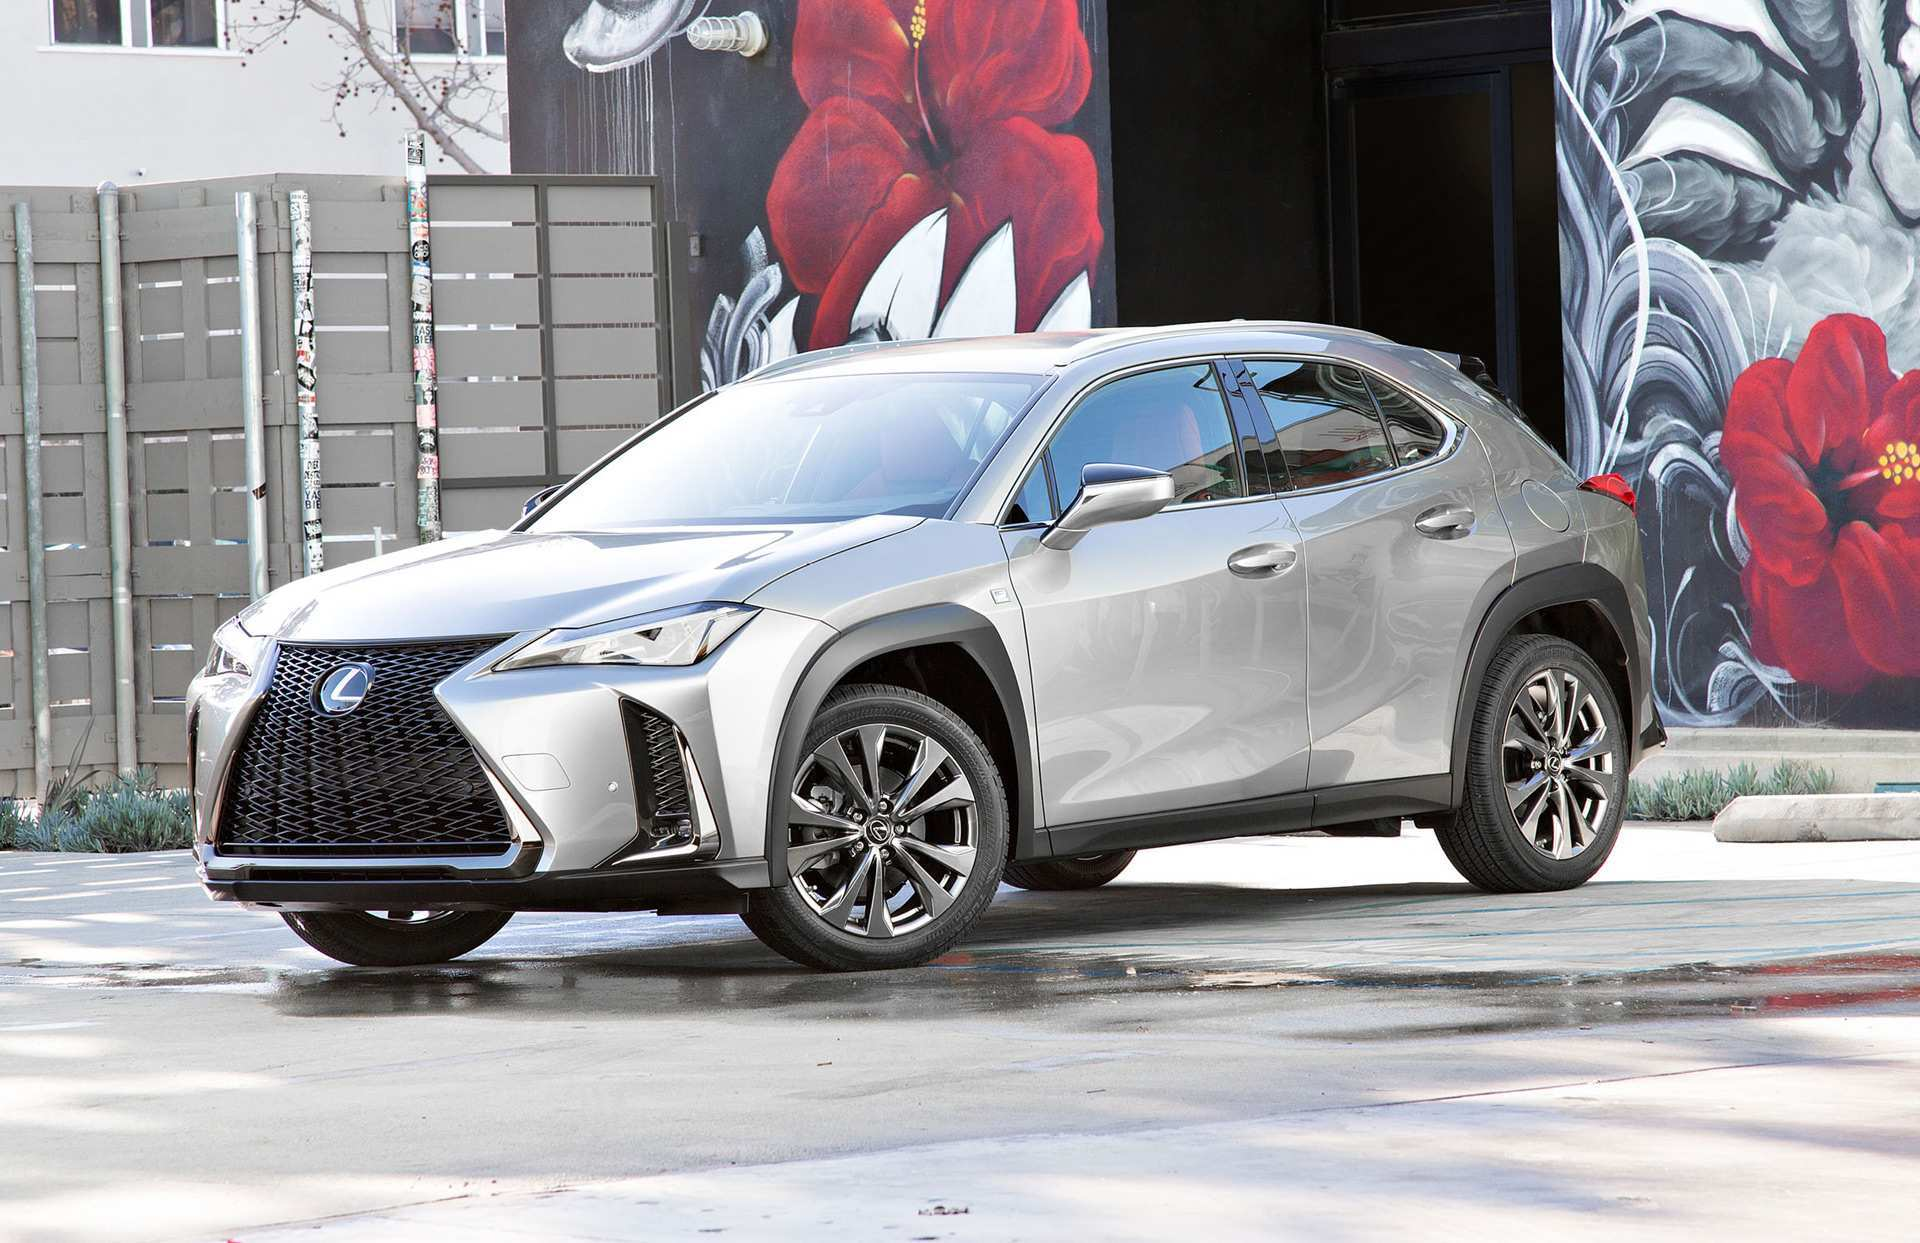 63 New Lexus 2020 Suv Ux Pricing by Lexus 2020 Suv Ux